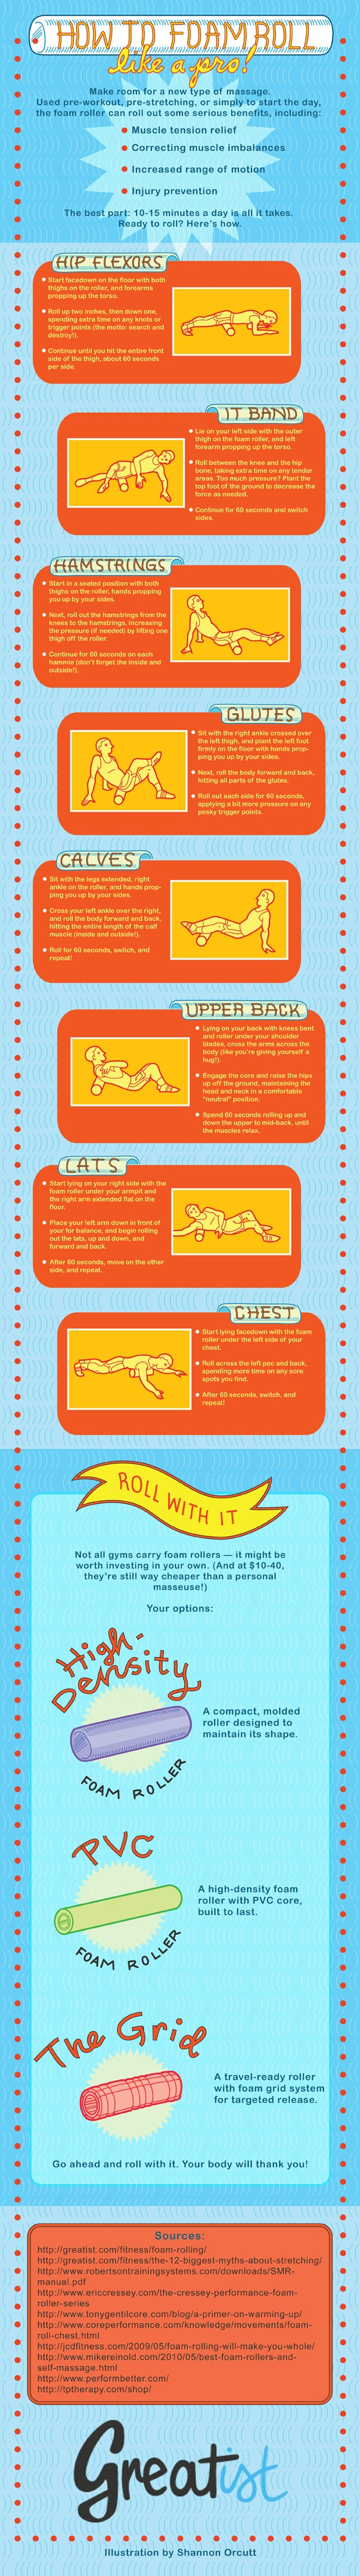 infographic better for posture